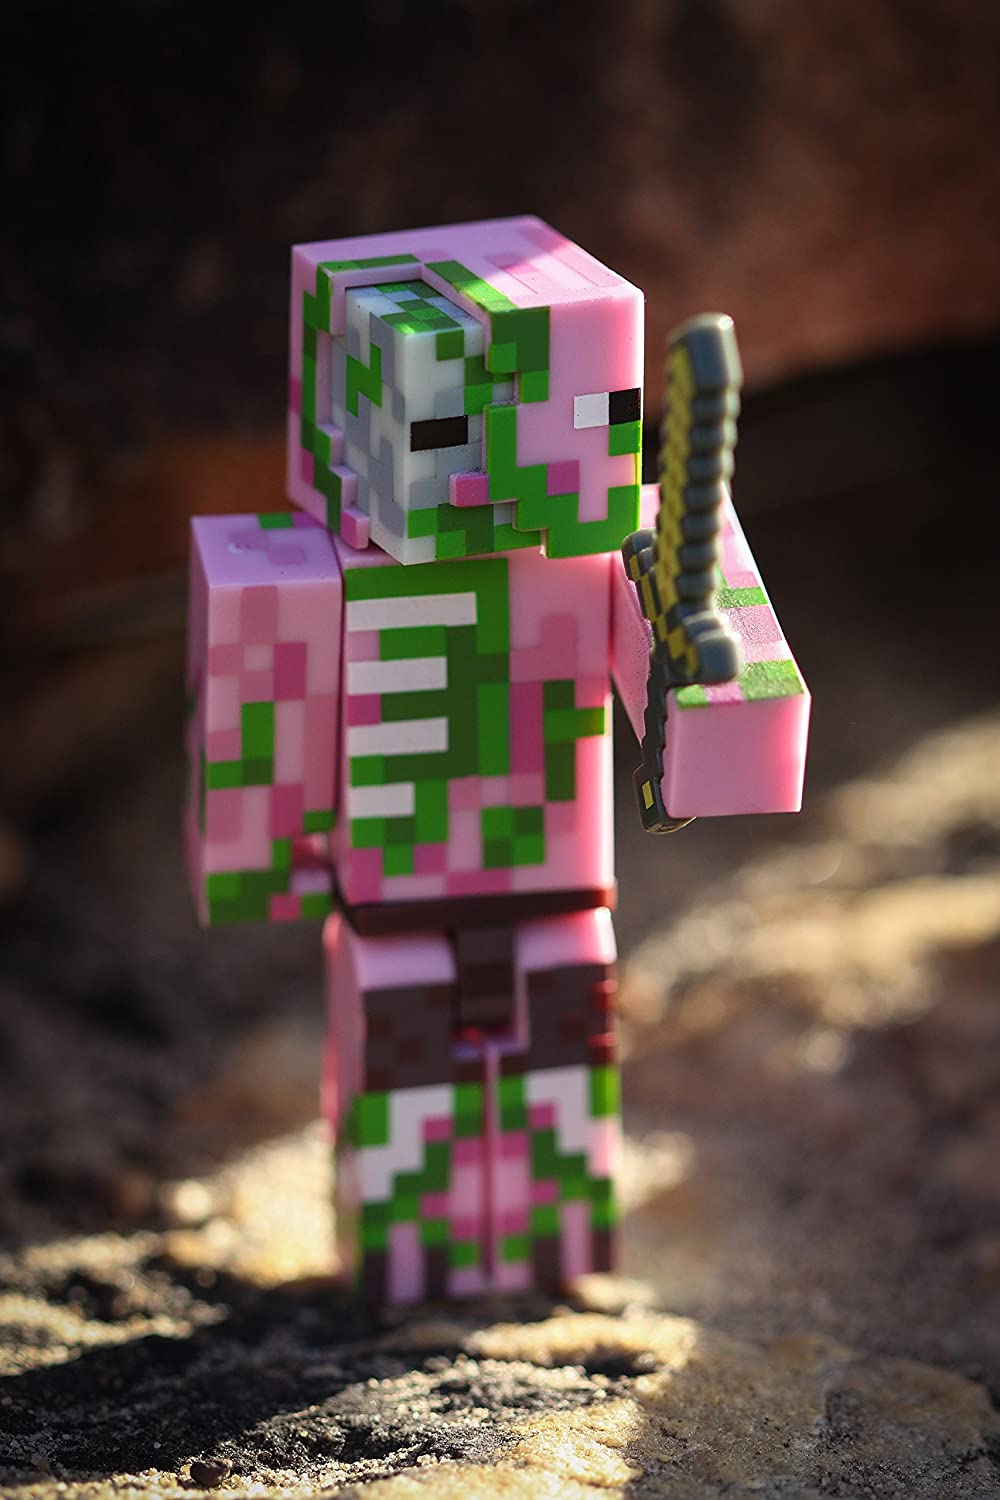 Import 16476 Minecraft Charged Creeper Pack Figure Pack Jazwares